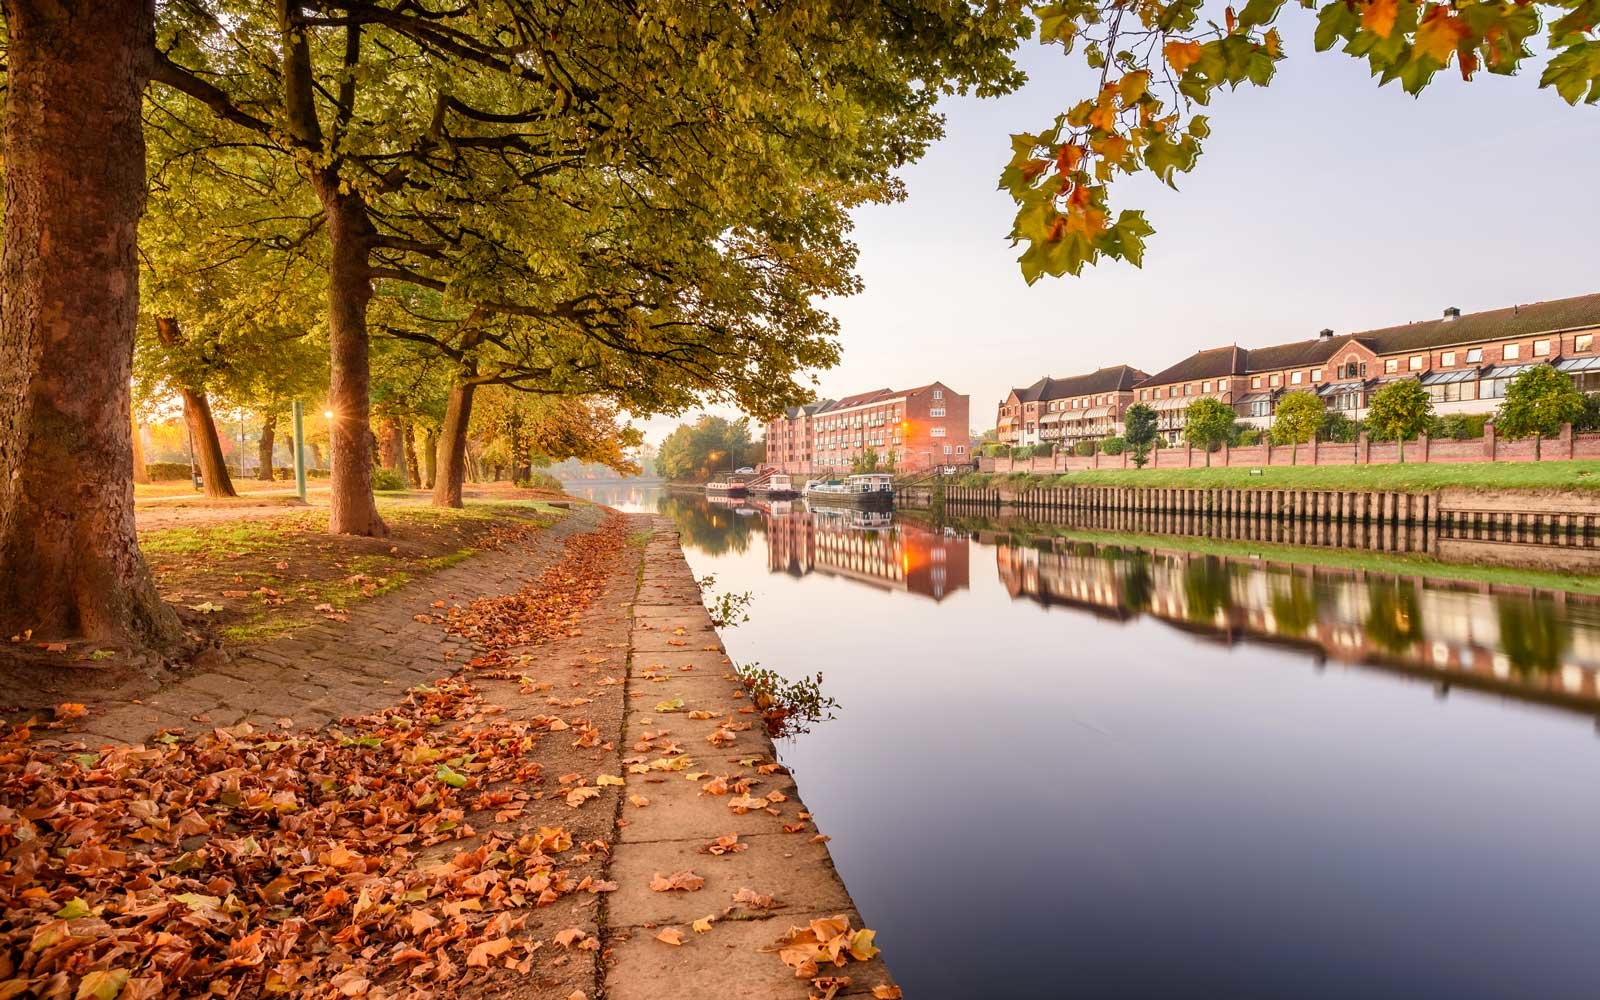 River Ouse, York, UK